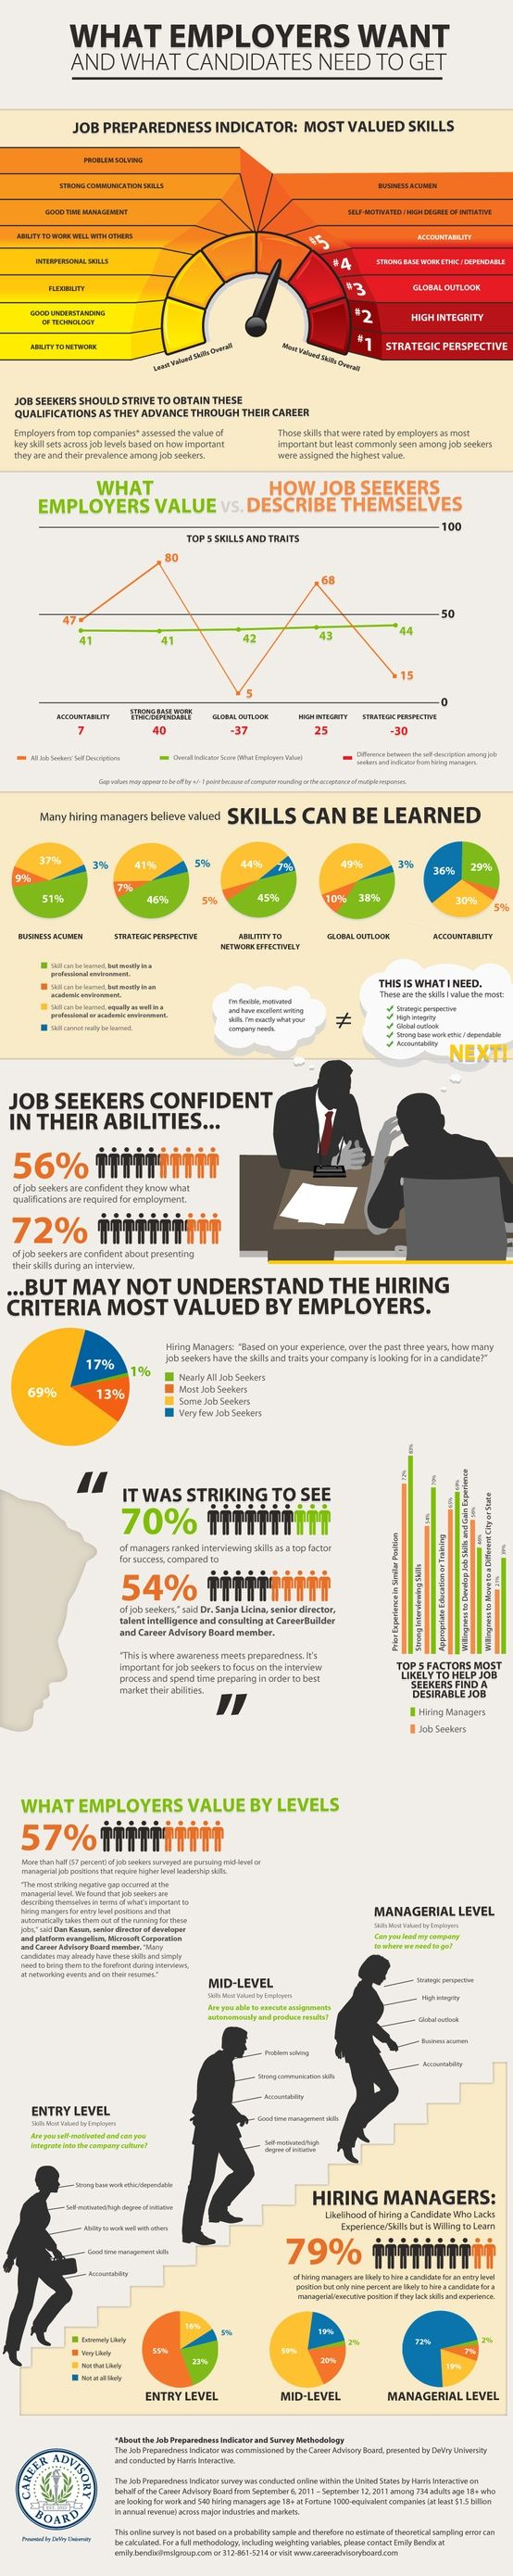 What Skills Do Employers Want From Potential Job Candidates? #infographic